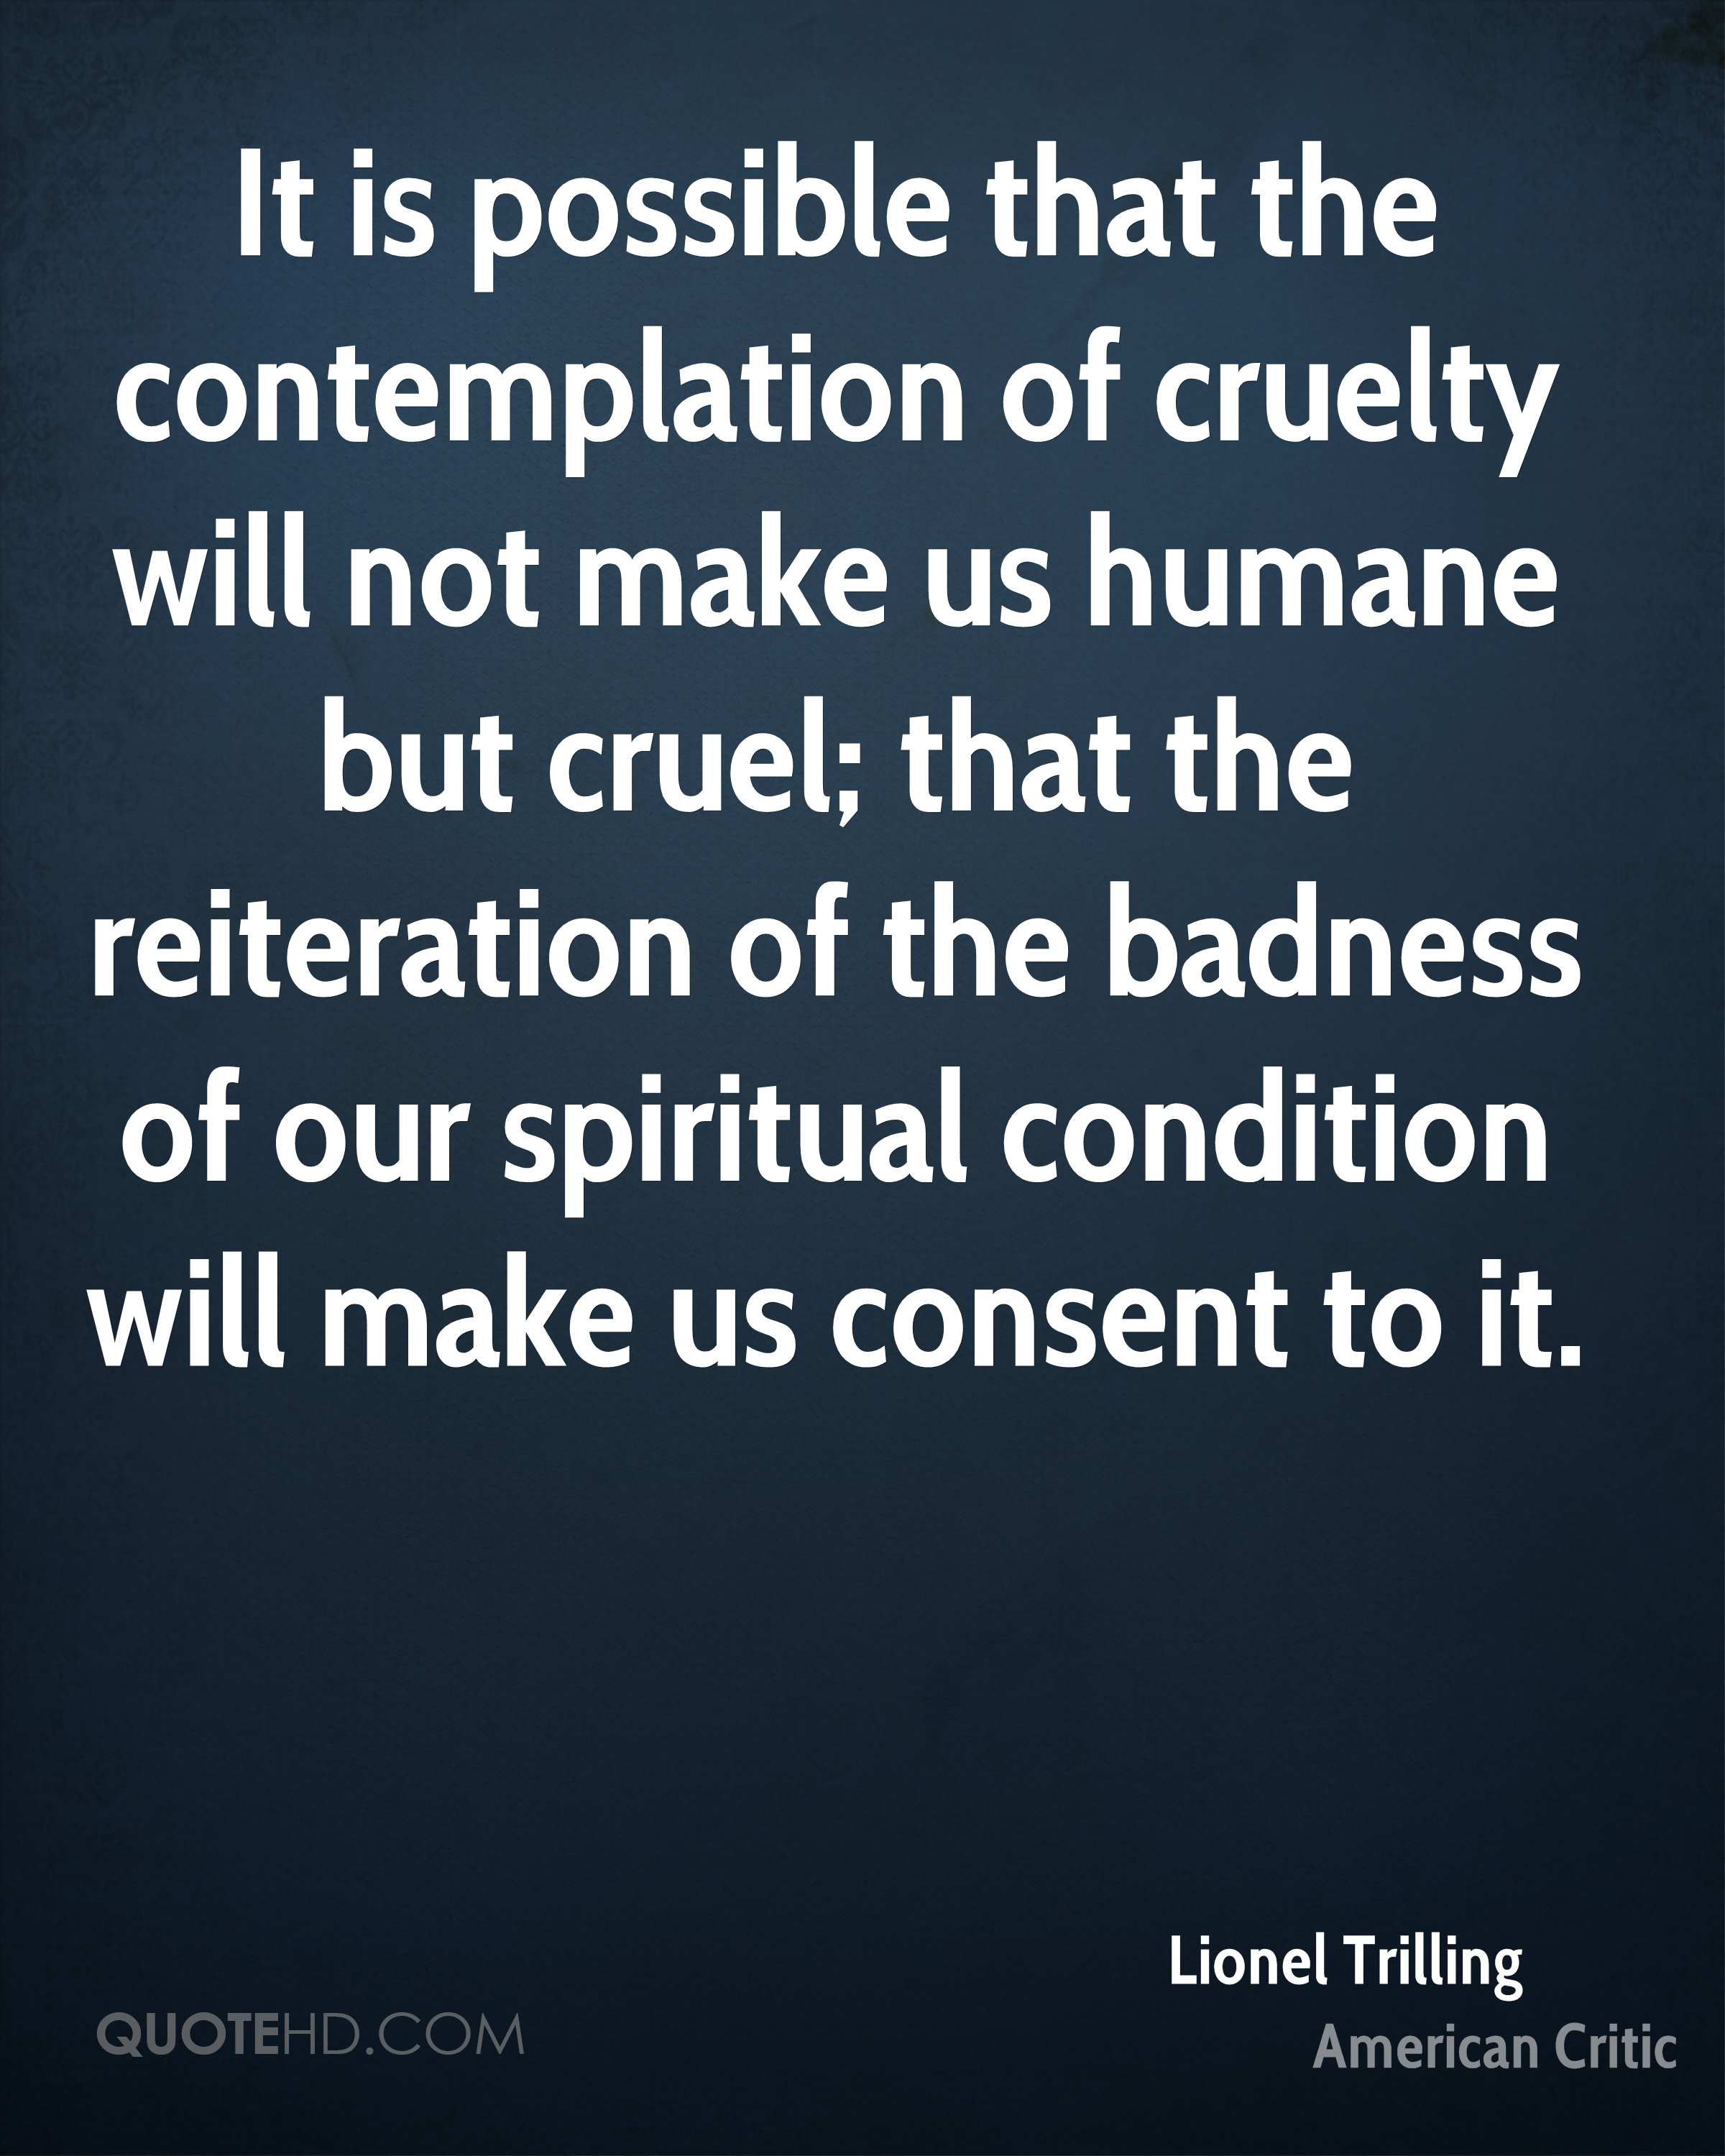 It is possible that the contemplation of cruelty will not make us humane but cruel; that the reiteration of the badness of our spiritual condition will make us consent to it.